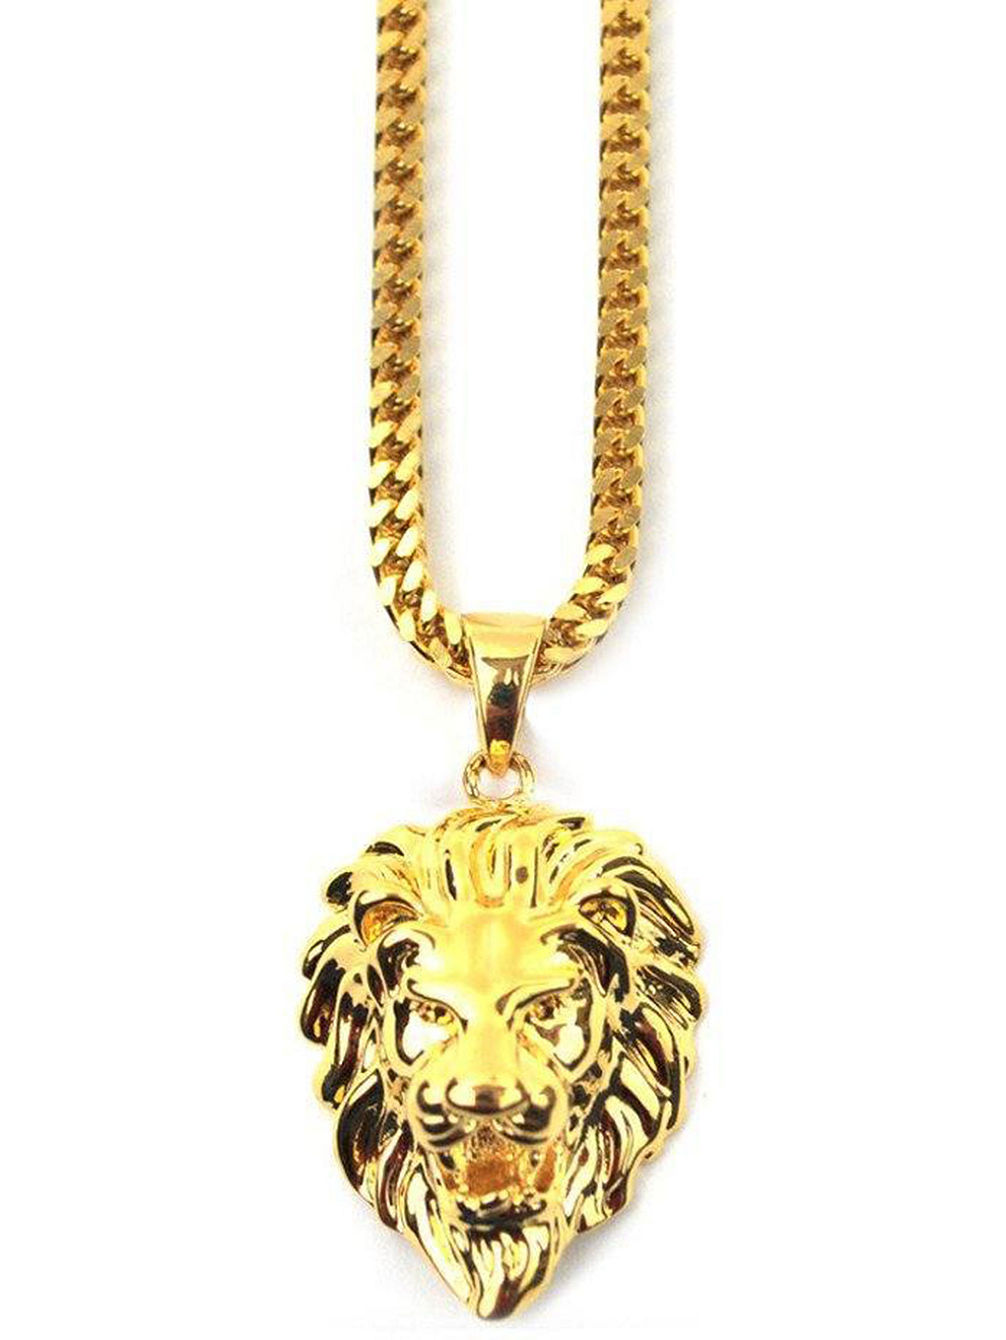 Inch Rope Micro Lion Head Necklace